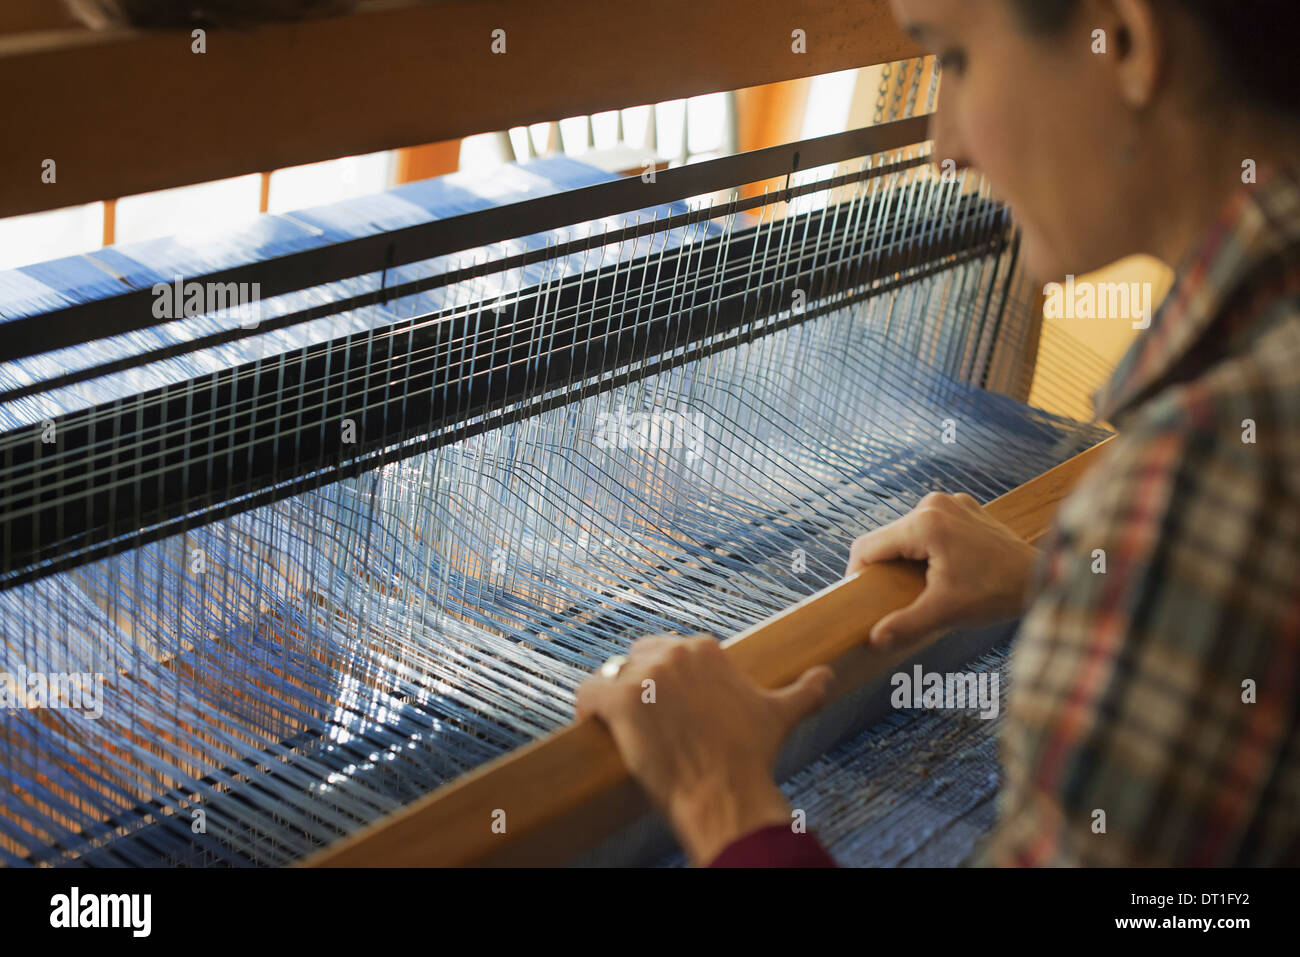 Handloom Weaving Stock Photos & Handloom Weaving Stock